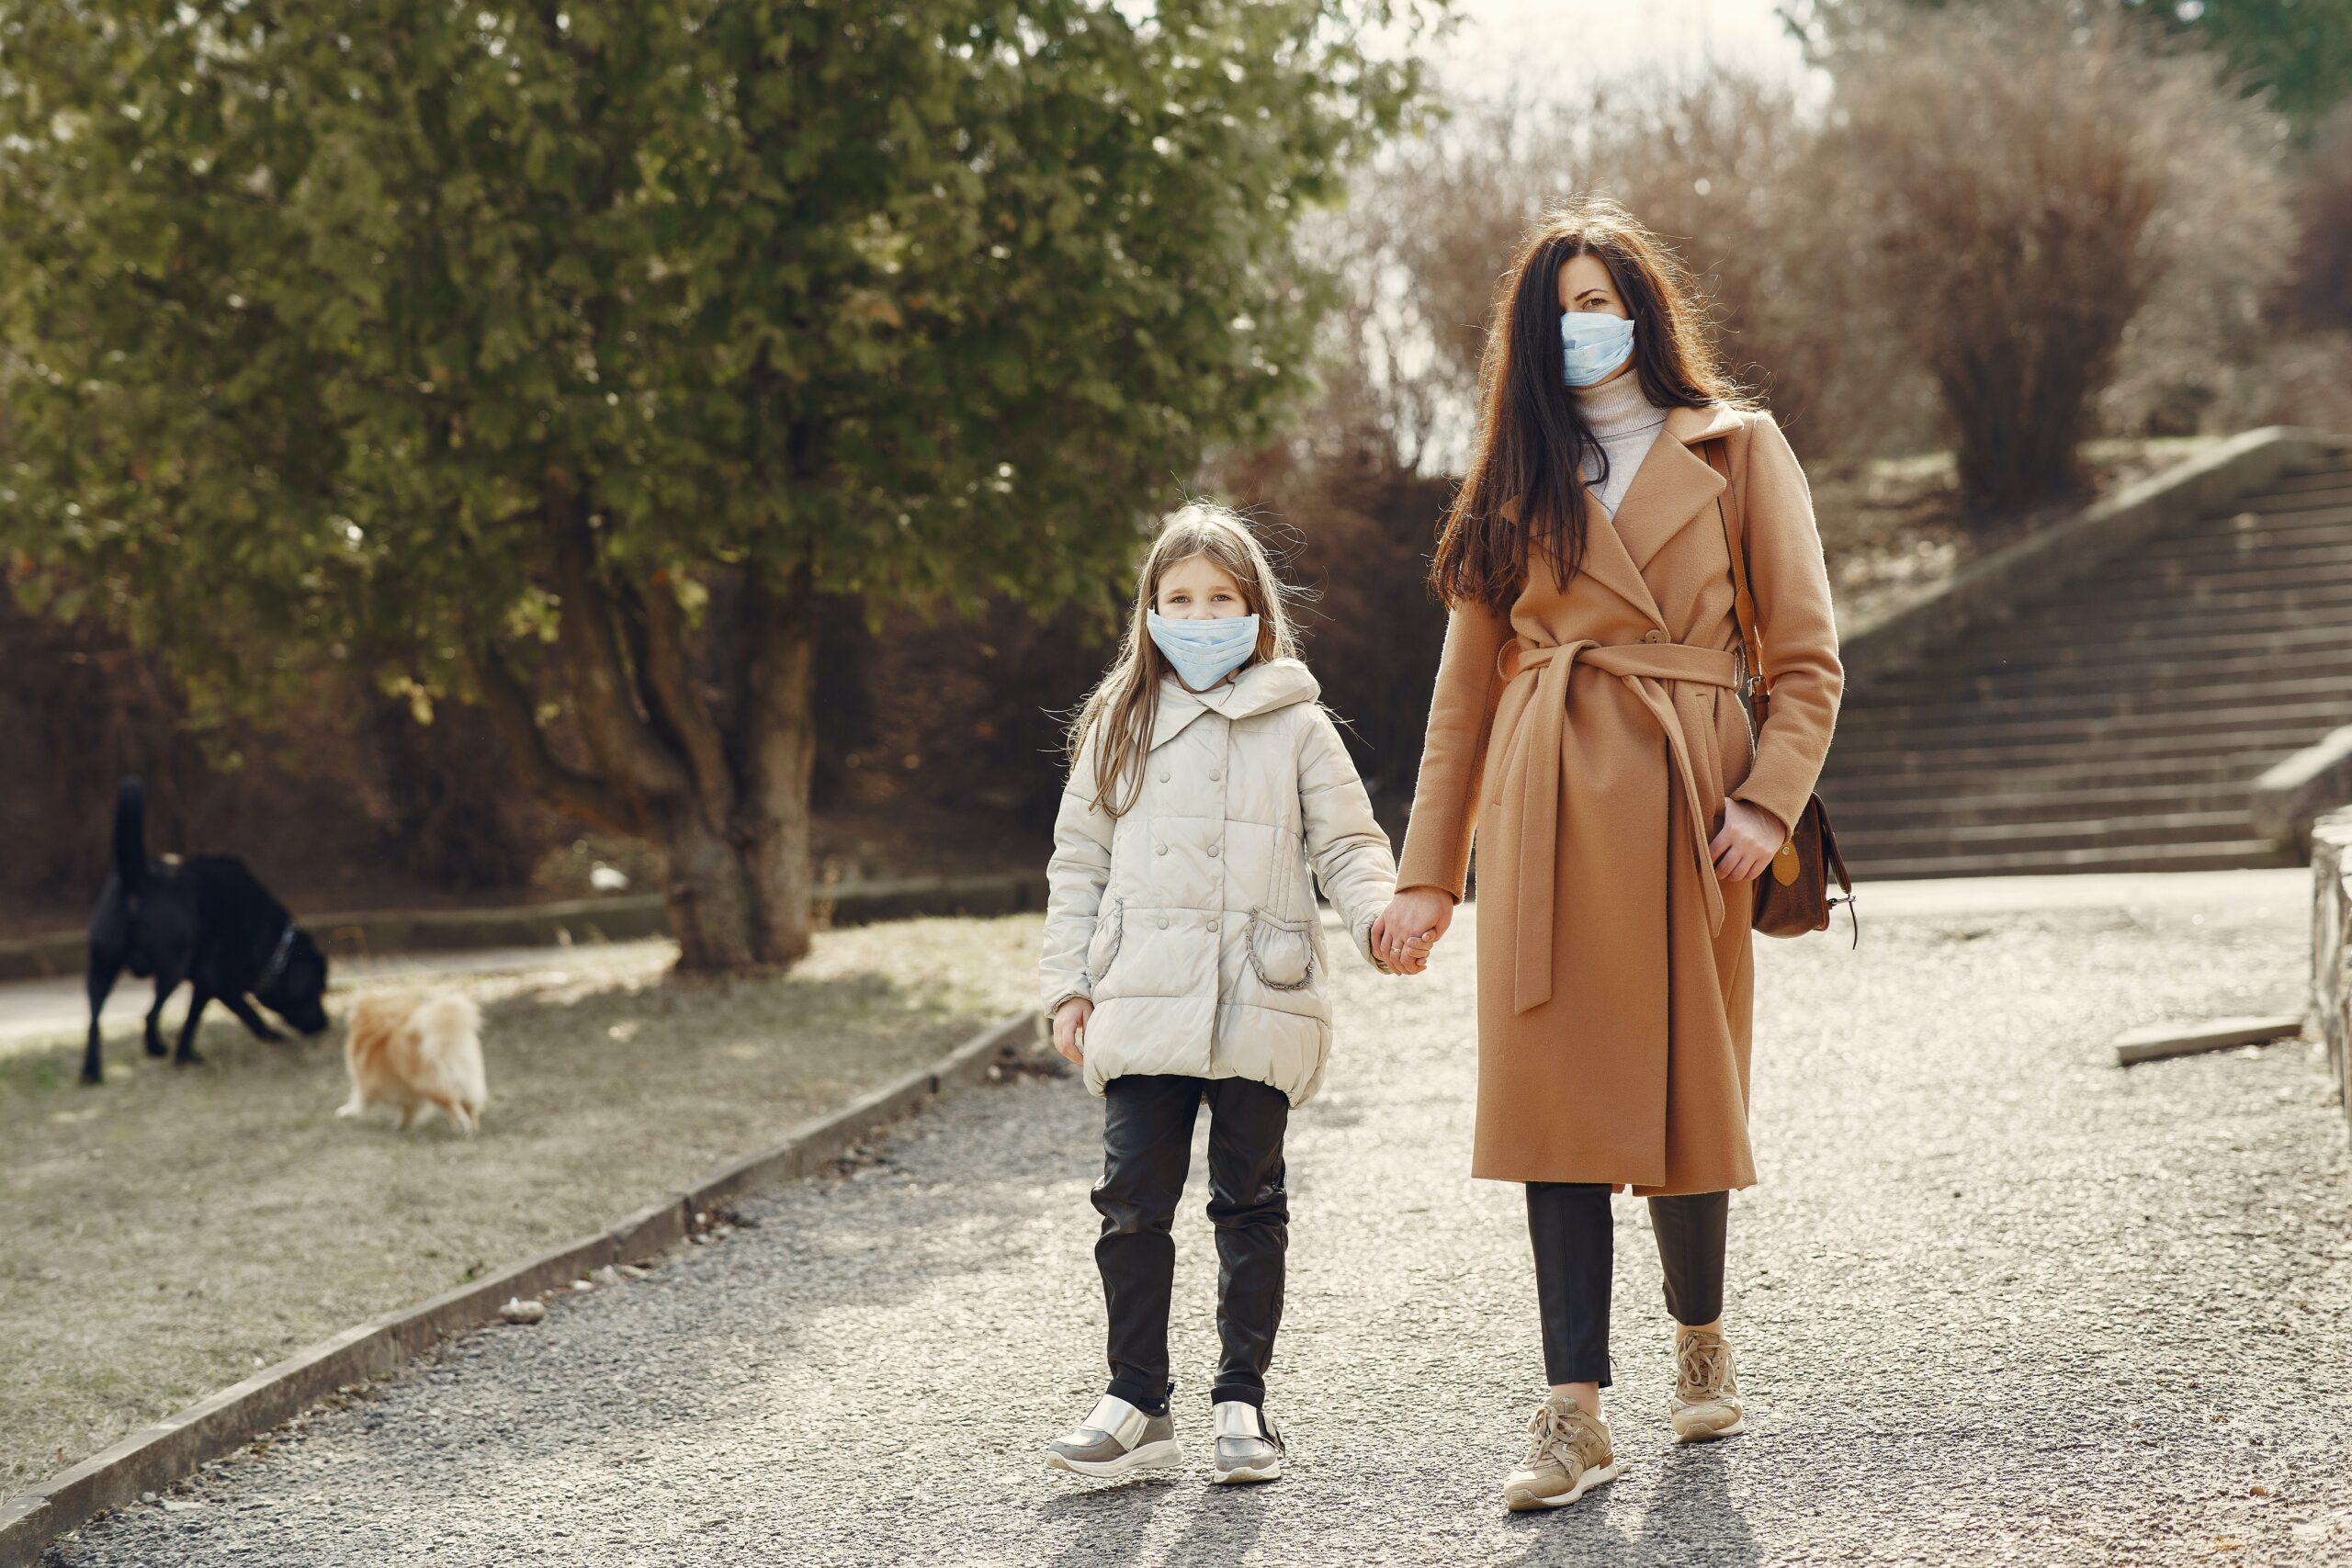 Mother and daughter walking together with masks on